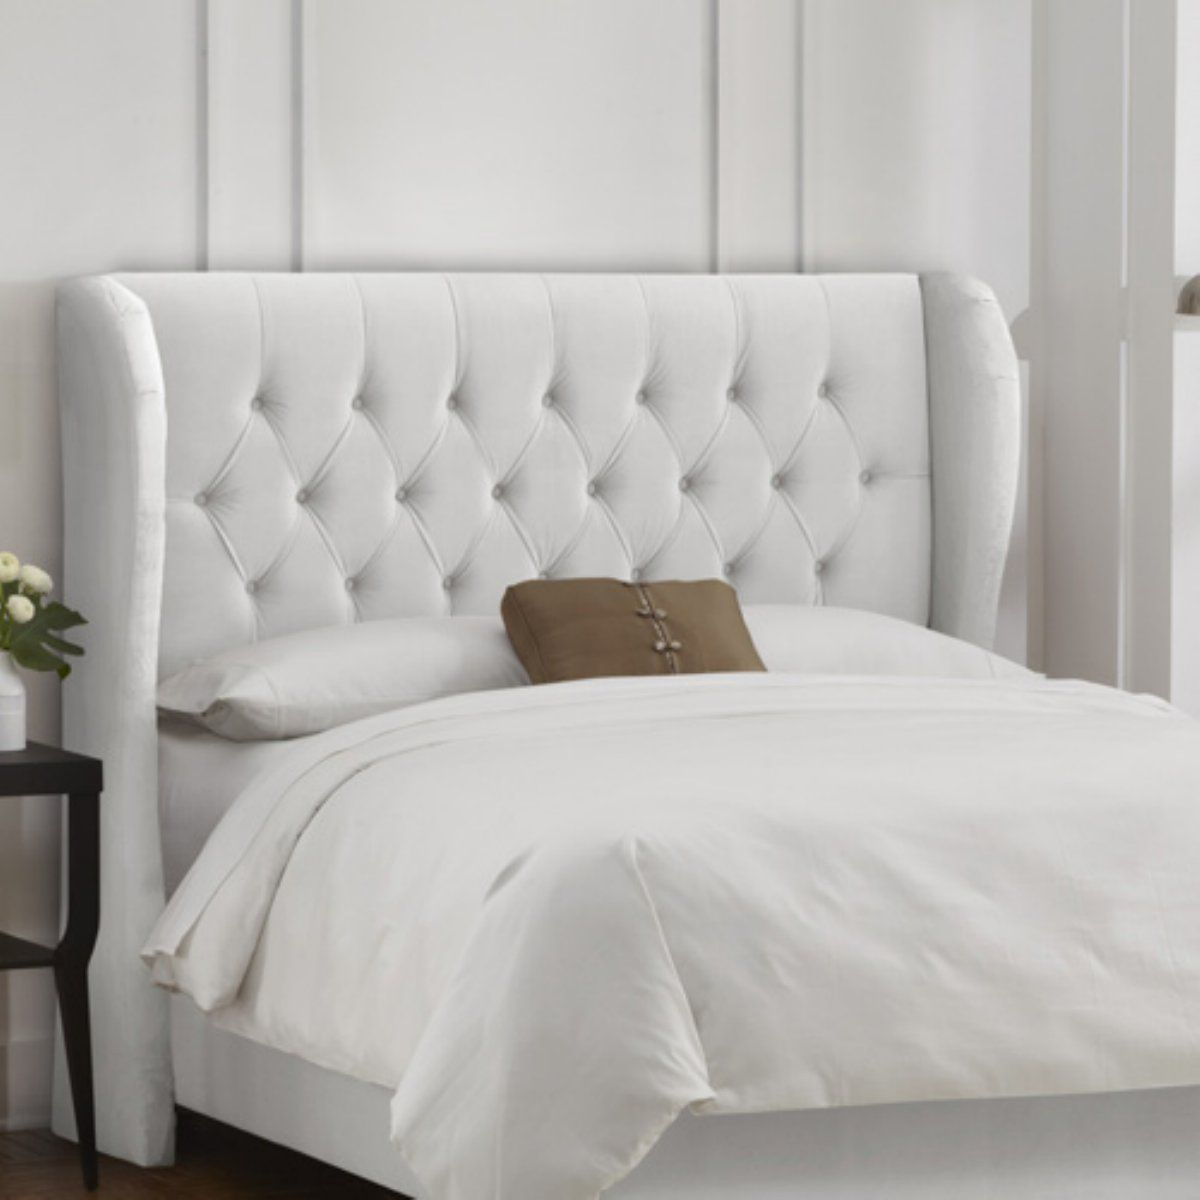 Wingback upholstered headboard Queen Tufted Wingback Upholstered Headboard Pinterest Tufted Wingback Upholstered Headboard La Casa Pinterest